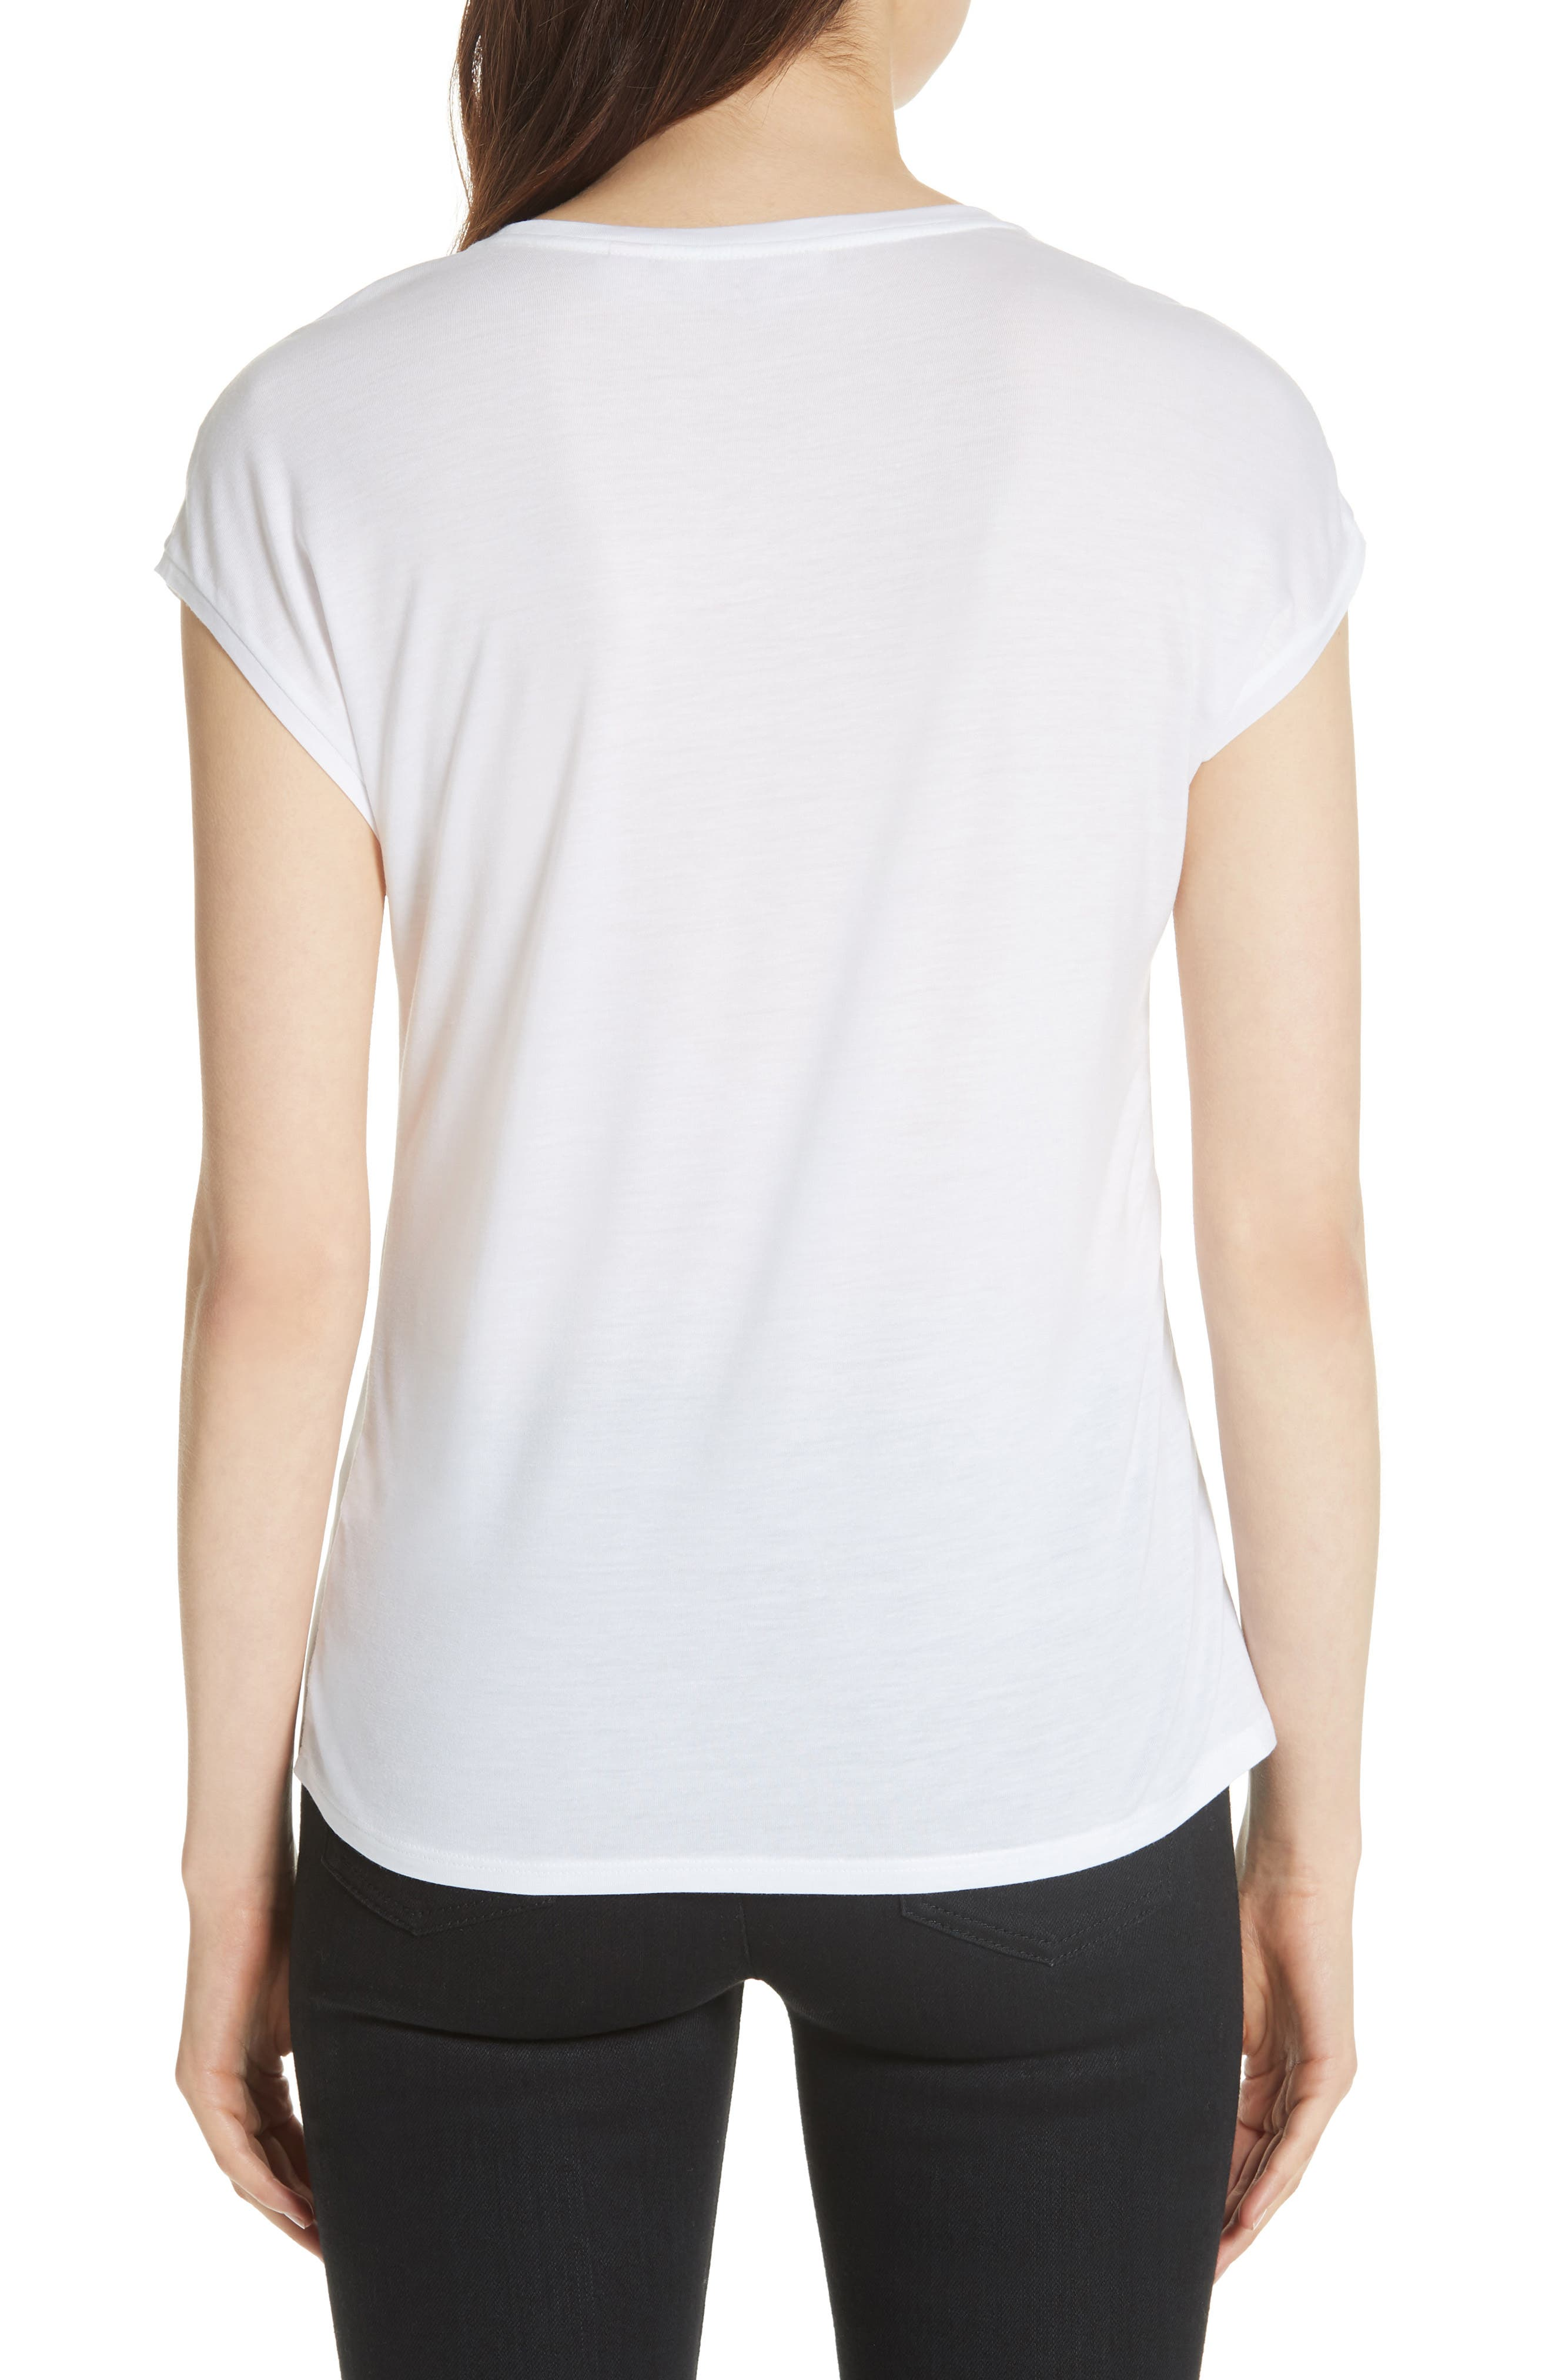 Anee Tranquility Woven Front Top,                             Alternate thumbnail 2, color,